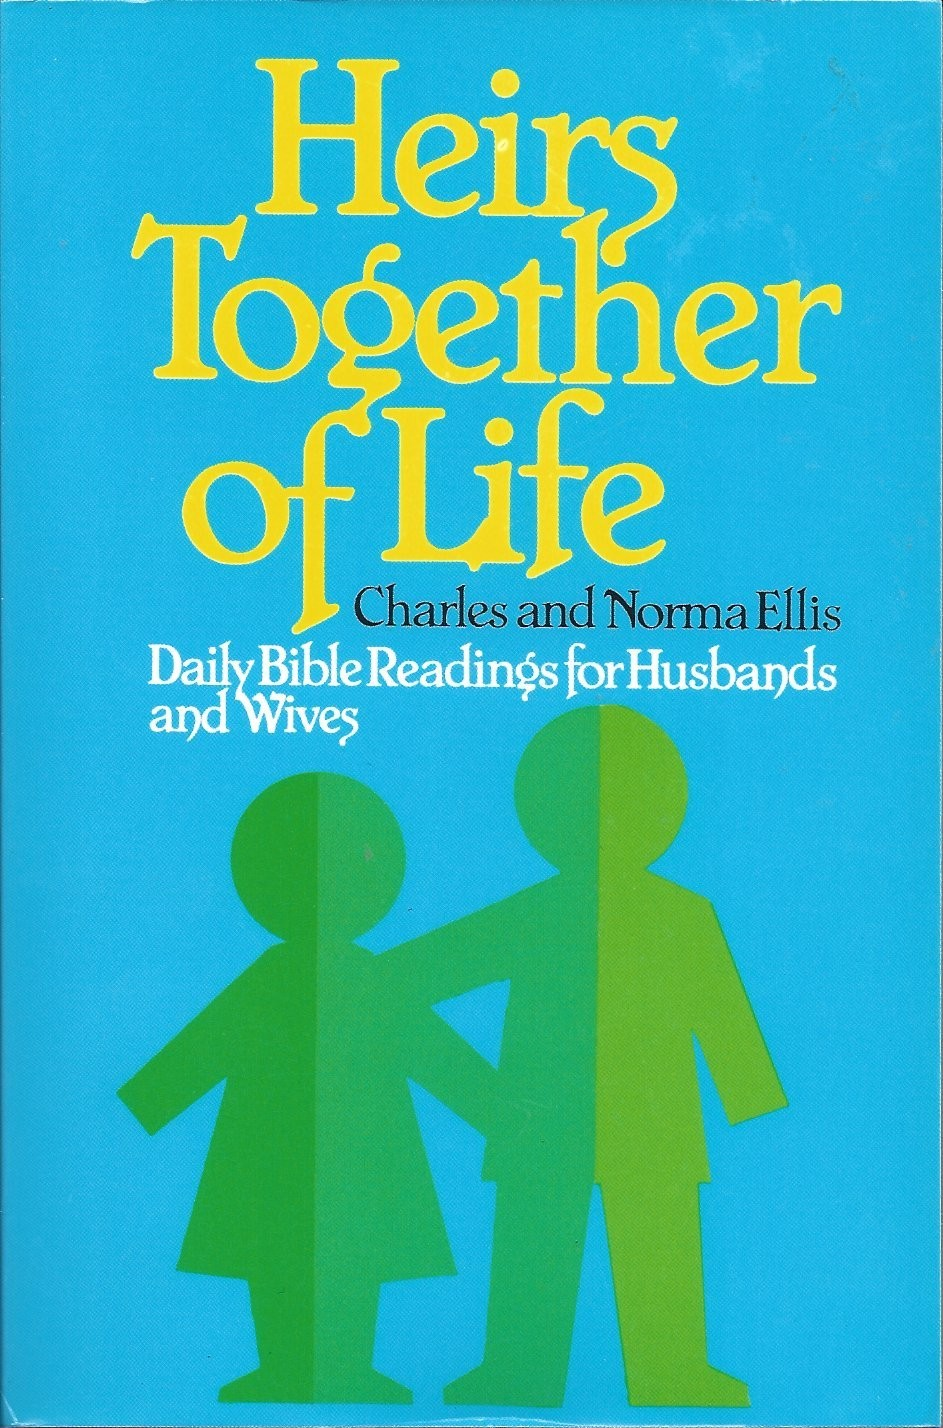 heirs together of life daily bible readings for husbands and wives